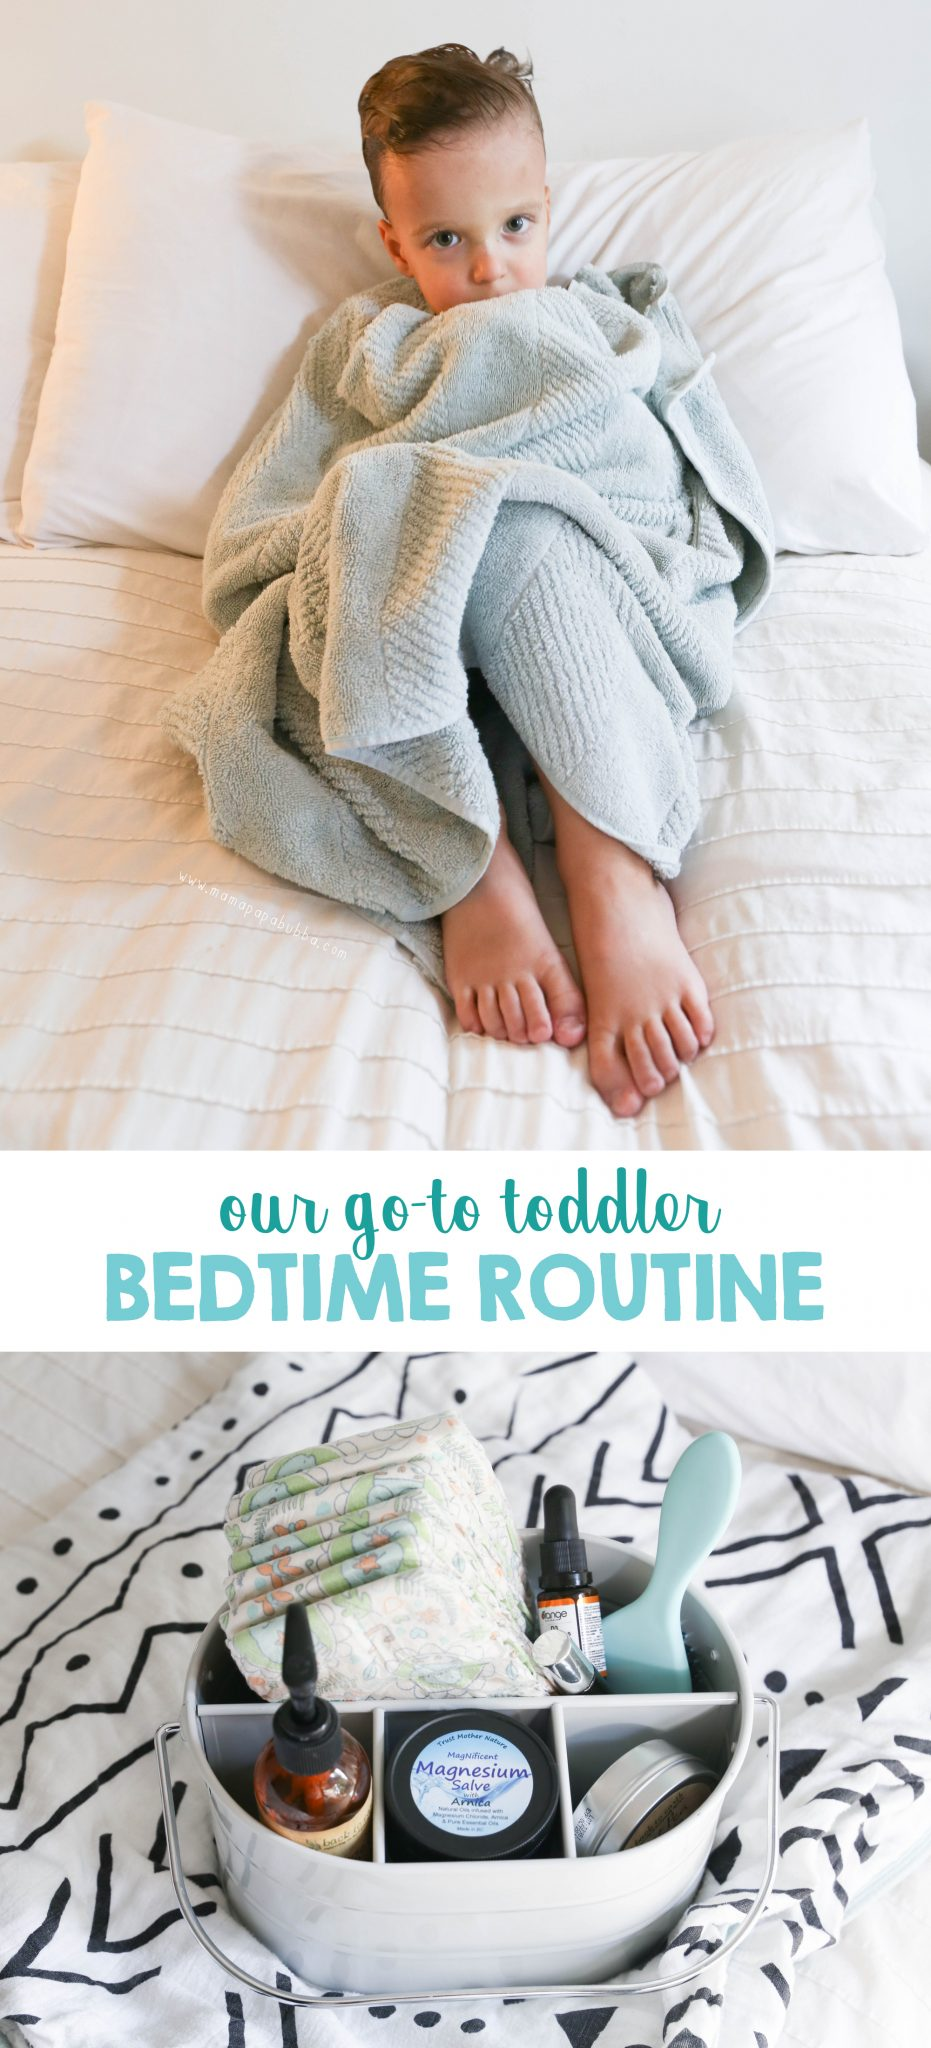 Go-To Bedtime Routine for Toddlers